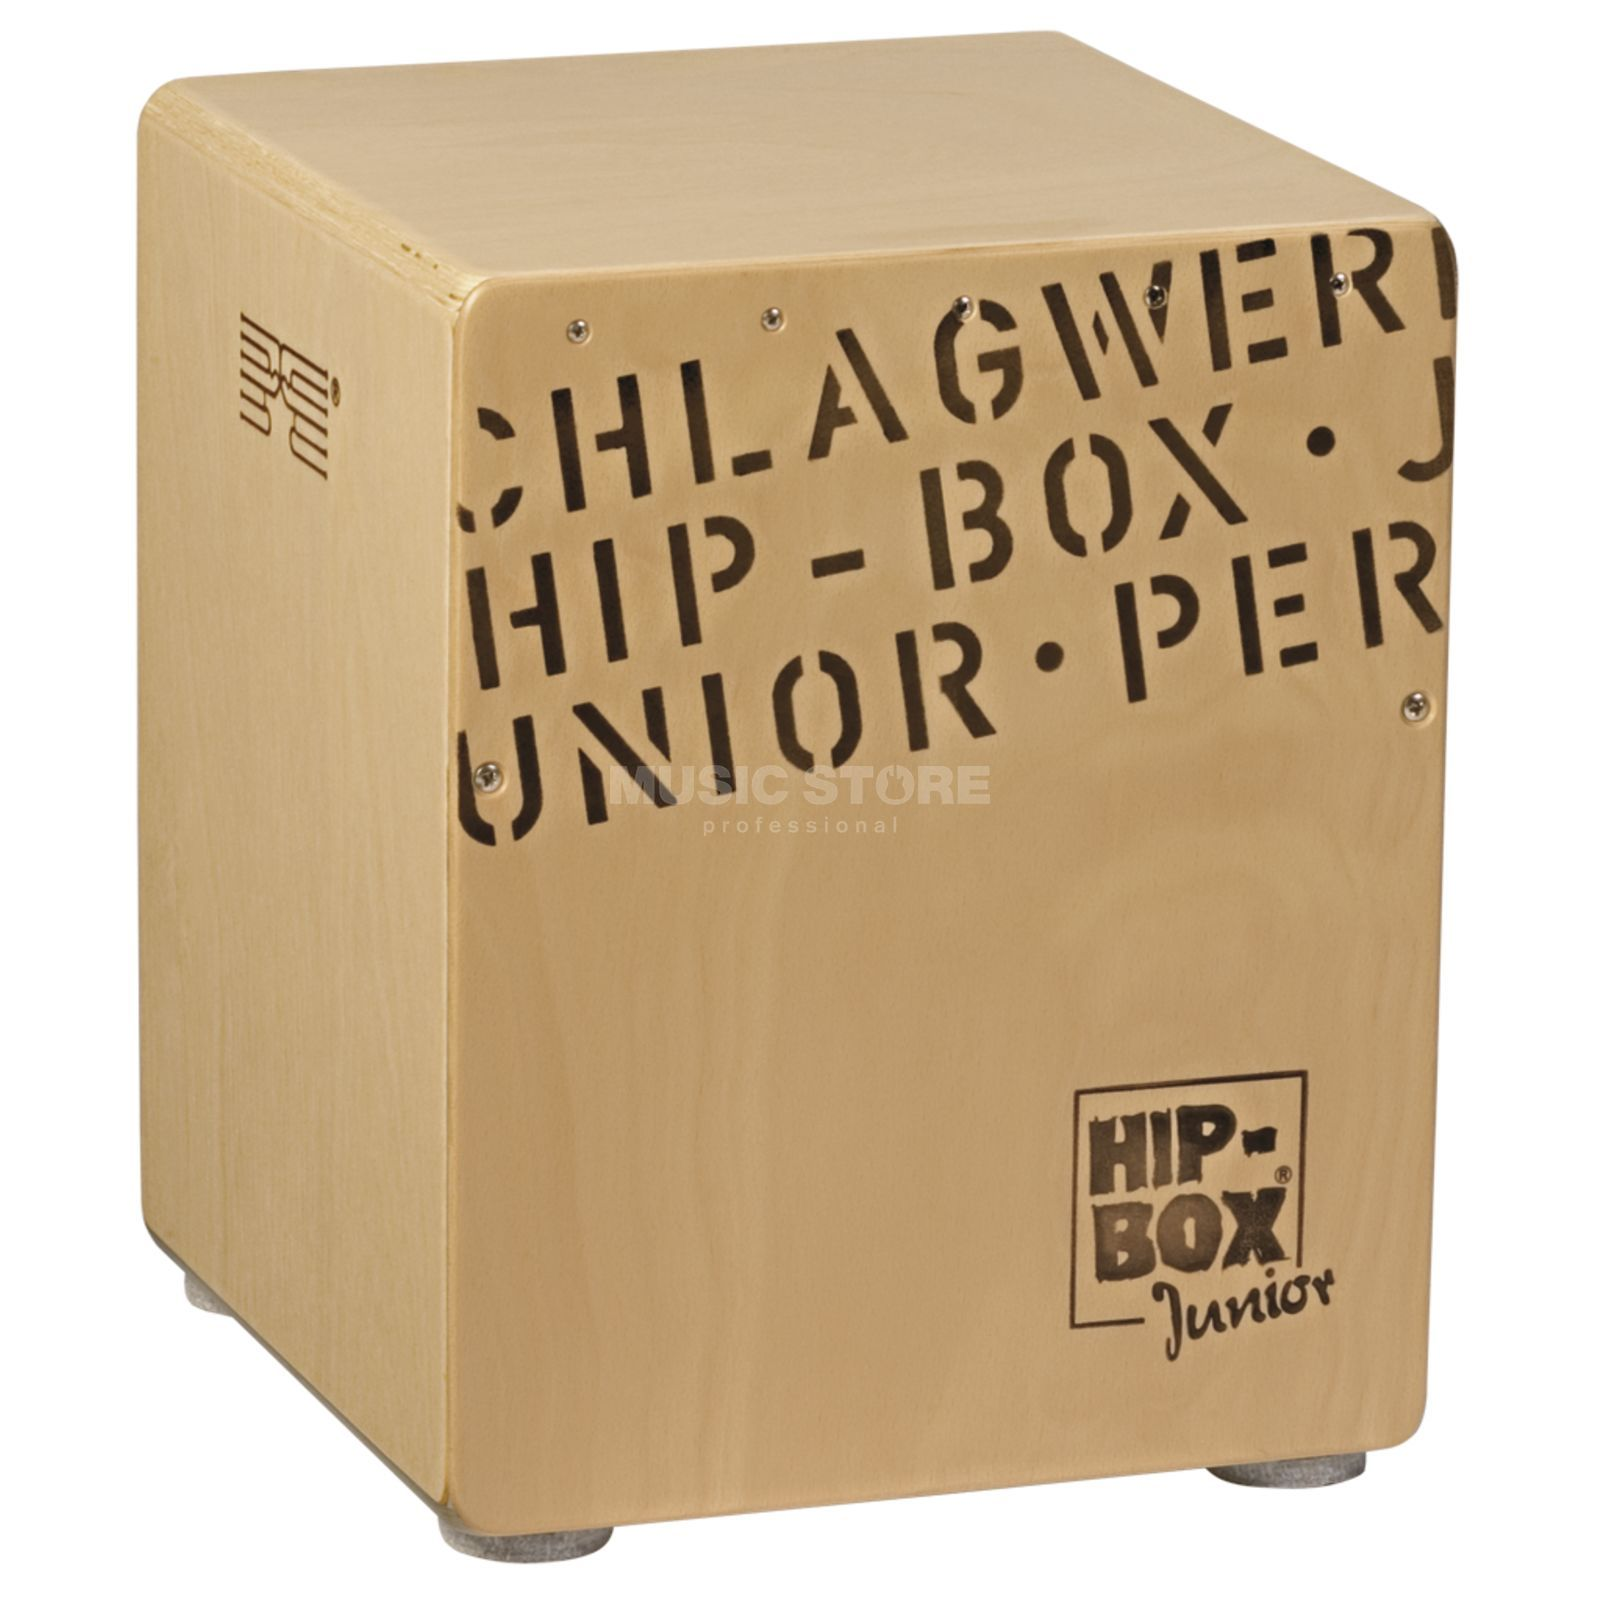 Schlagwerk Hip-Box Junior Cajon CP 401  Produktbild